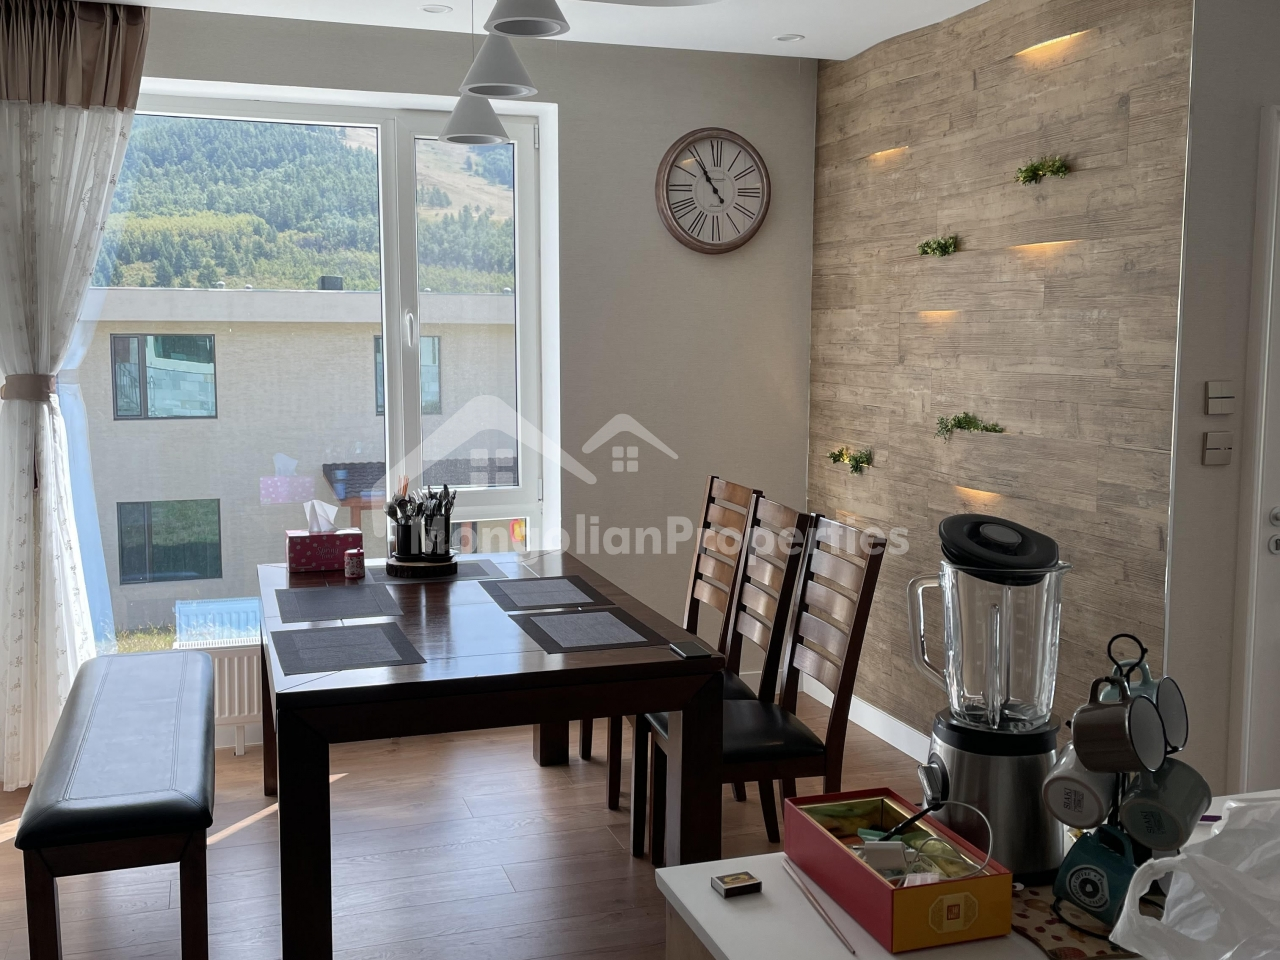 GREAT VIEW! FULLY FURNISHED, COMFORTABLE SINGLE HOUSE AT ZAMBULIN VILLAGE